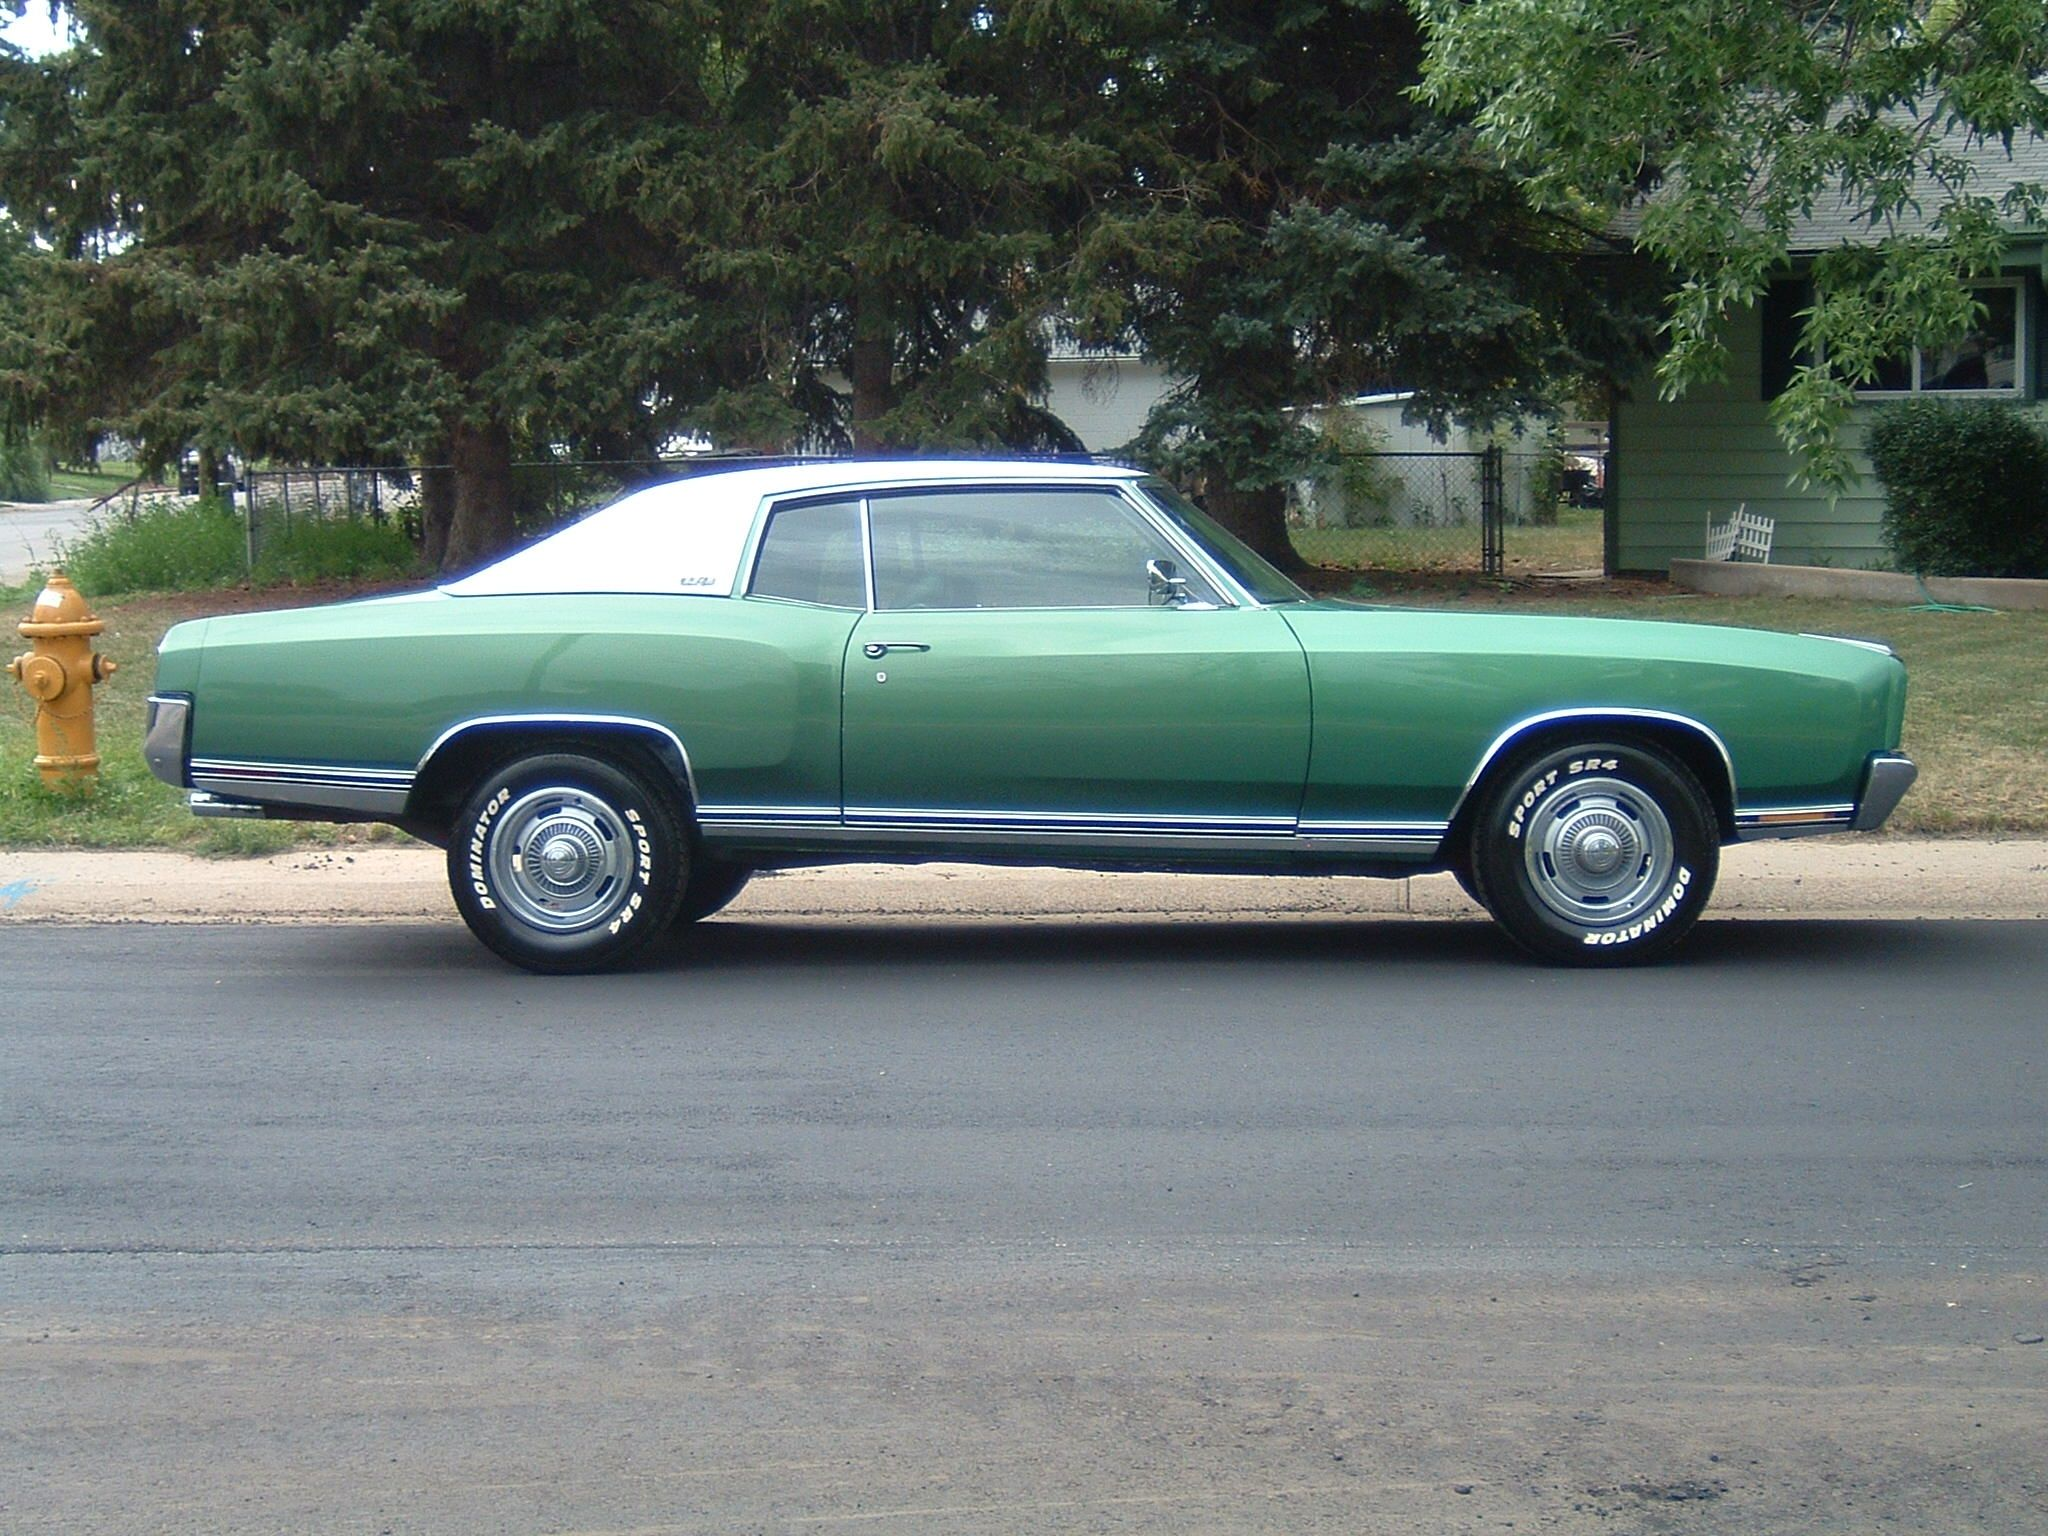 1970 monte carlo this needs to be parked in my drive way